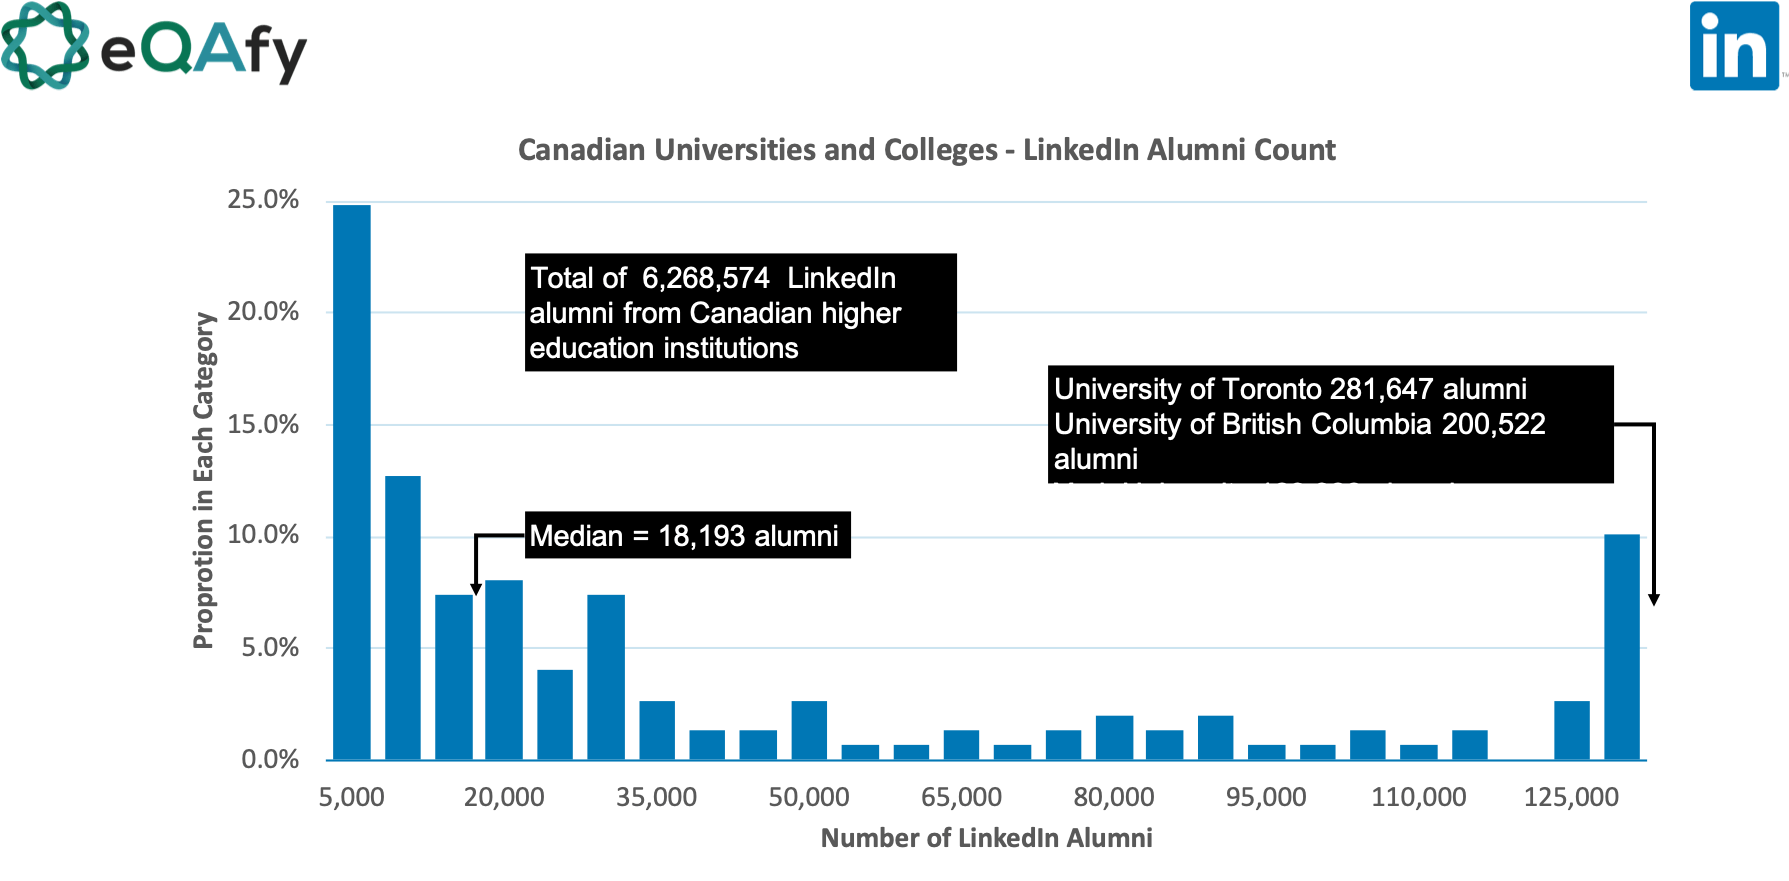 Distribution of the number of LinkedIn alumni for higher education/post-secondary institutions in Canada